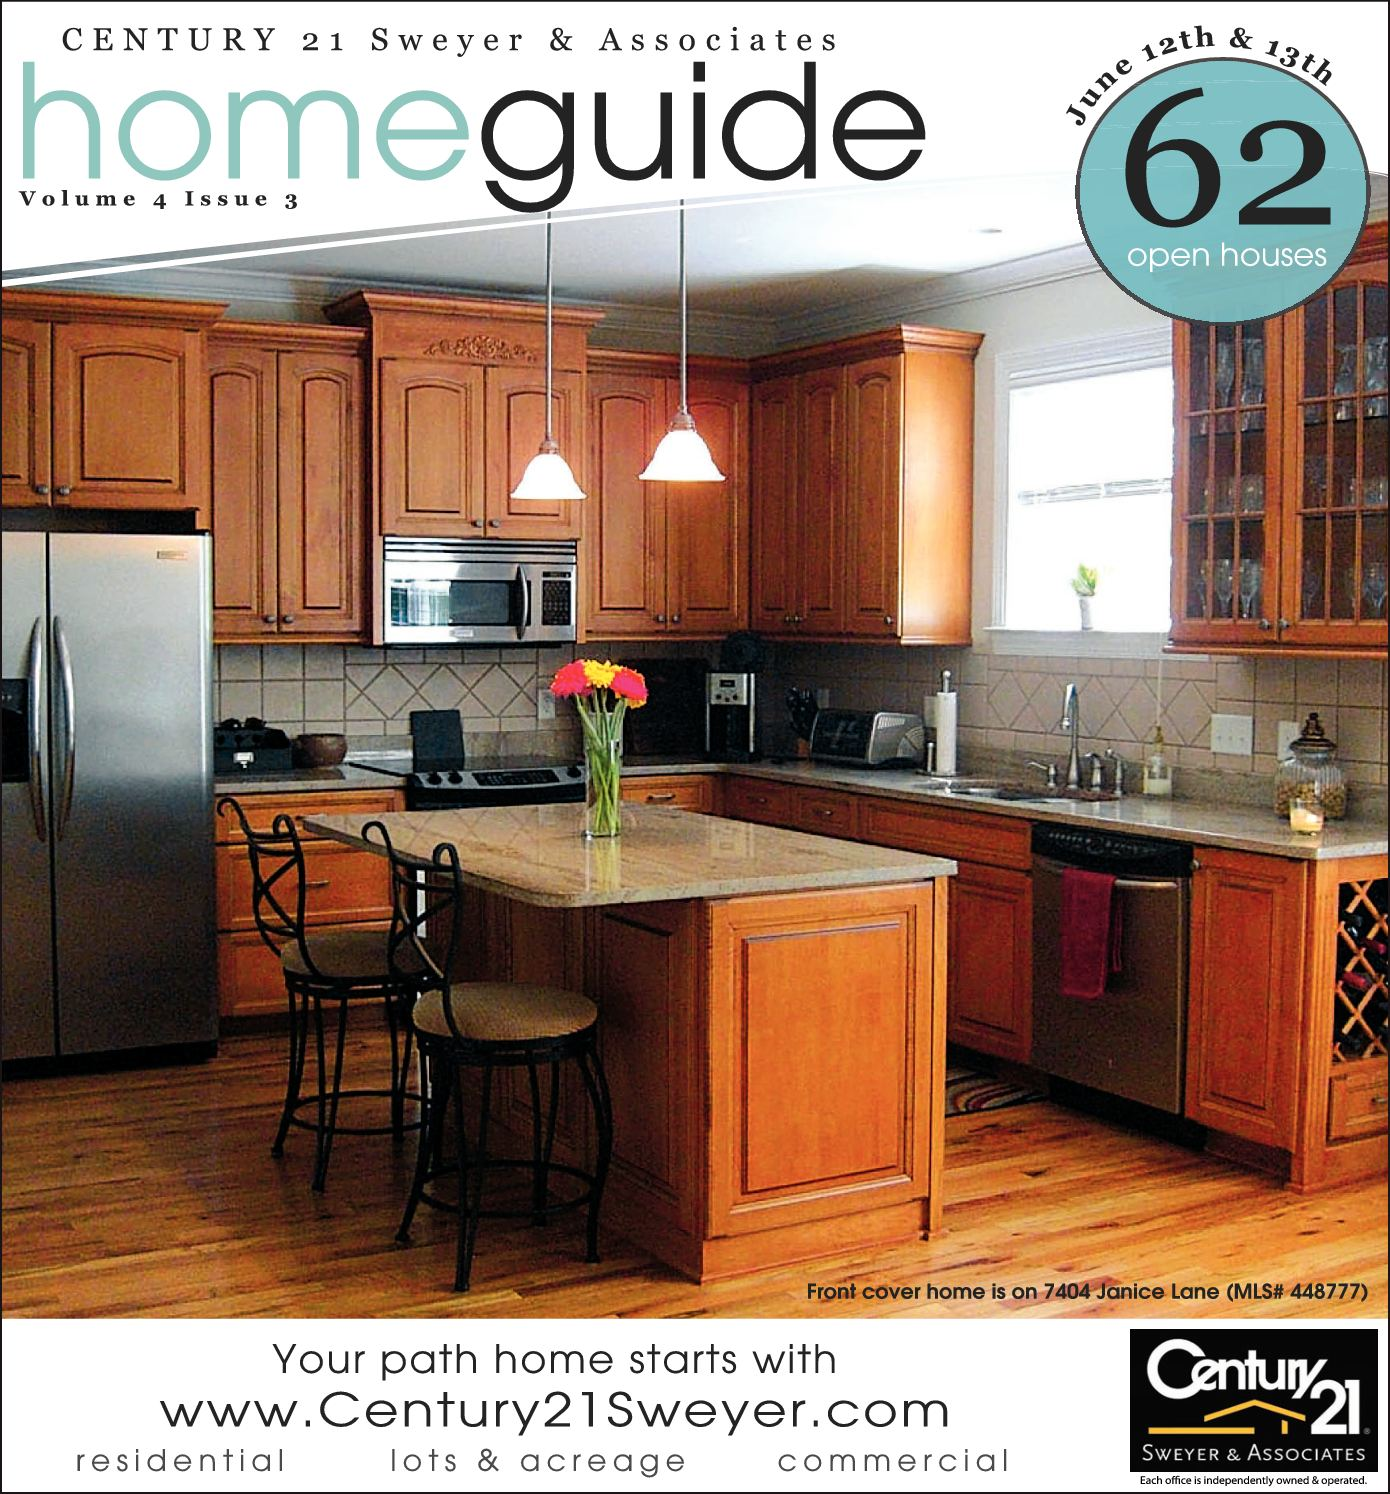 Calamo Century 21 Sweyer Associates Home Guide Volume 4 Issue How To Build A Horse Barn Hometips 3 Wilmington Nc Real Estate